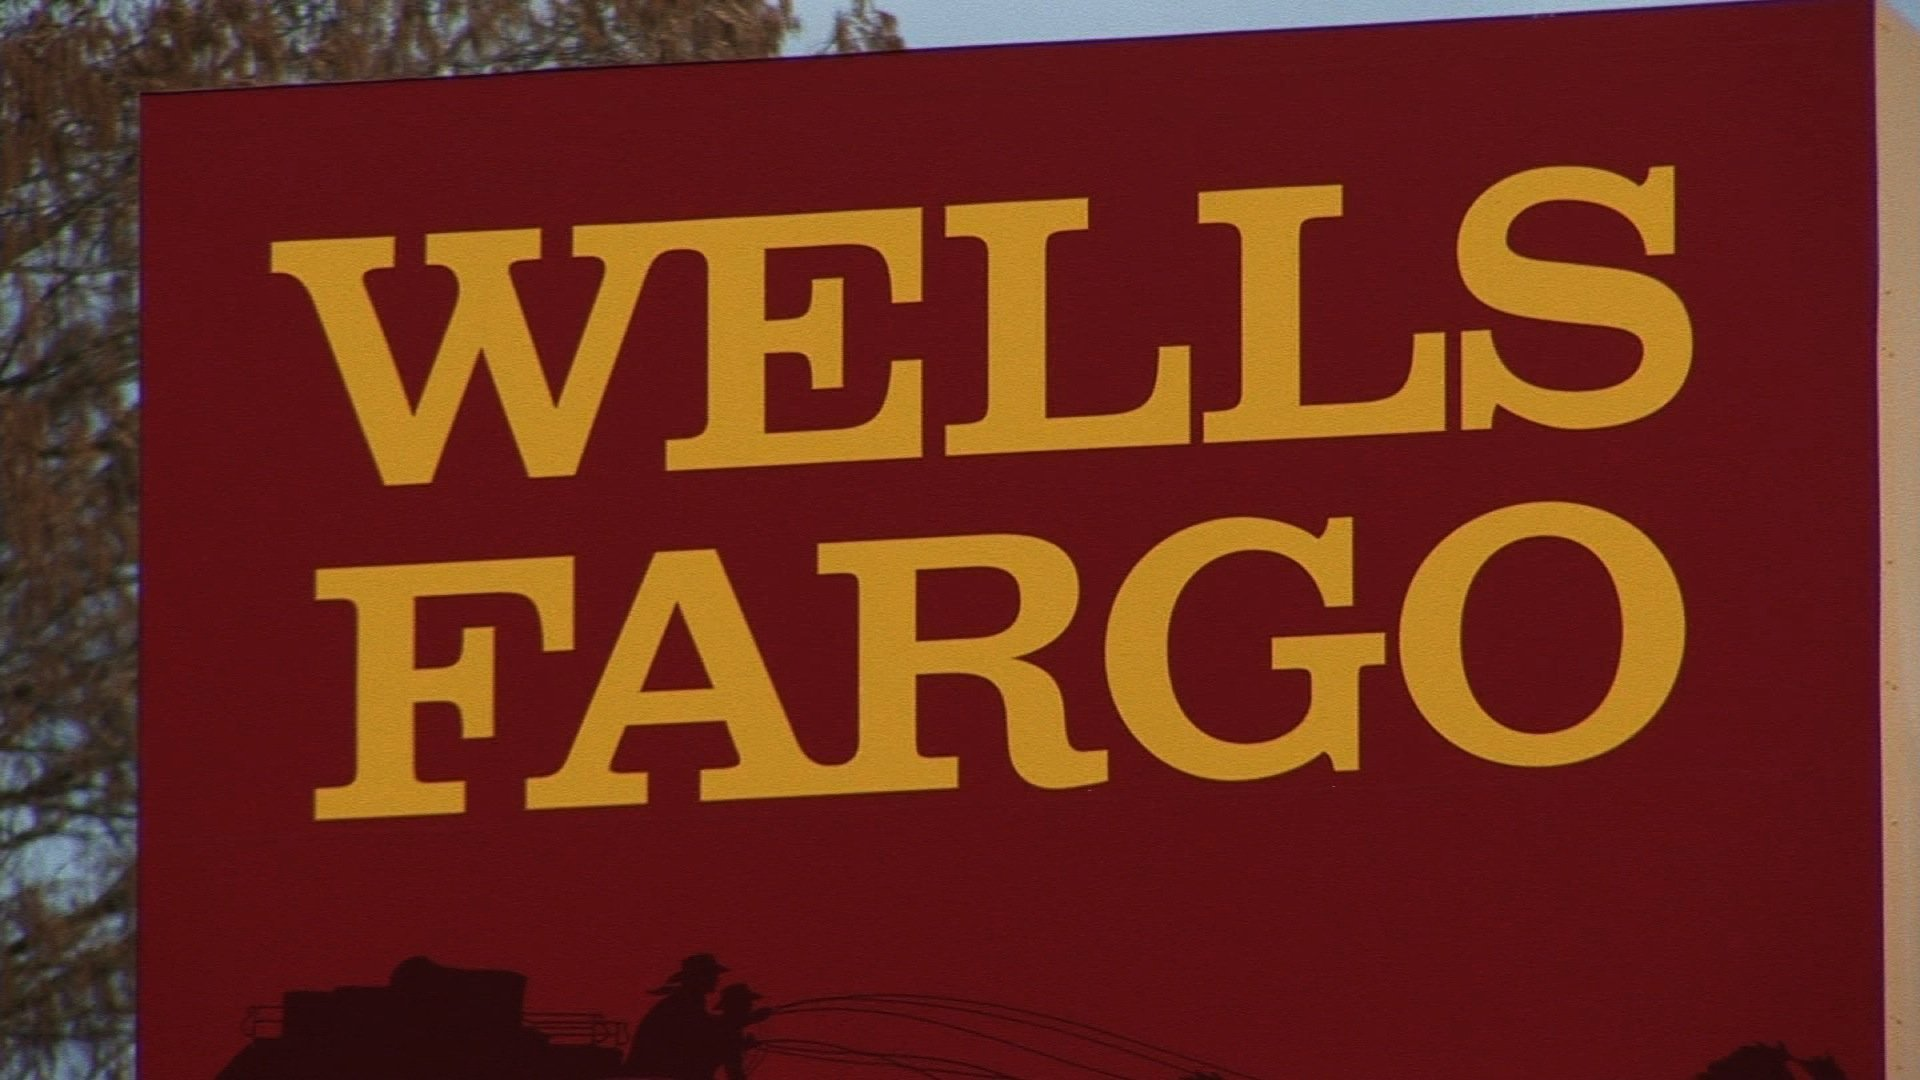 Klingman & Associates LLC Invests $552000 in Wells Fargo